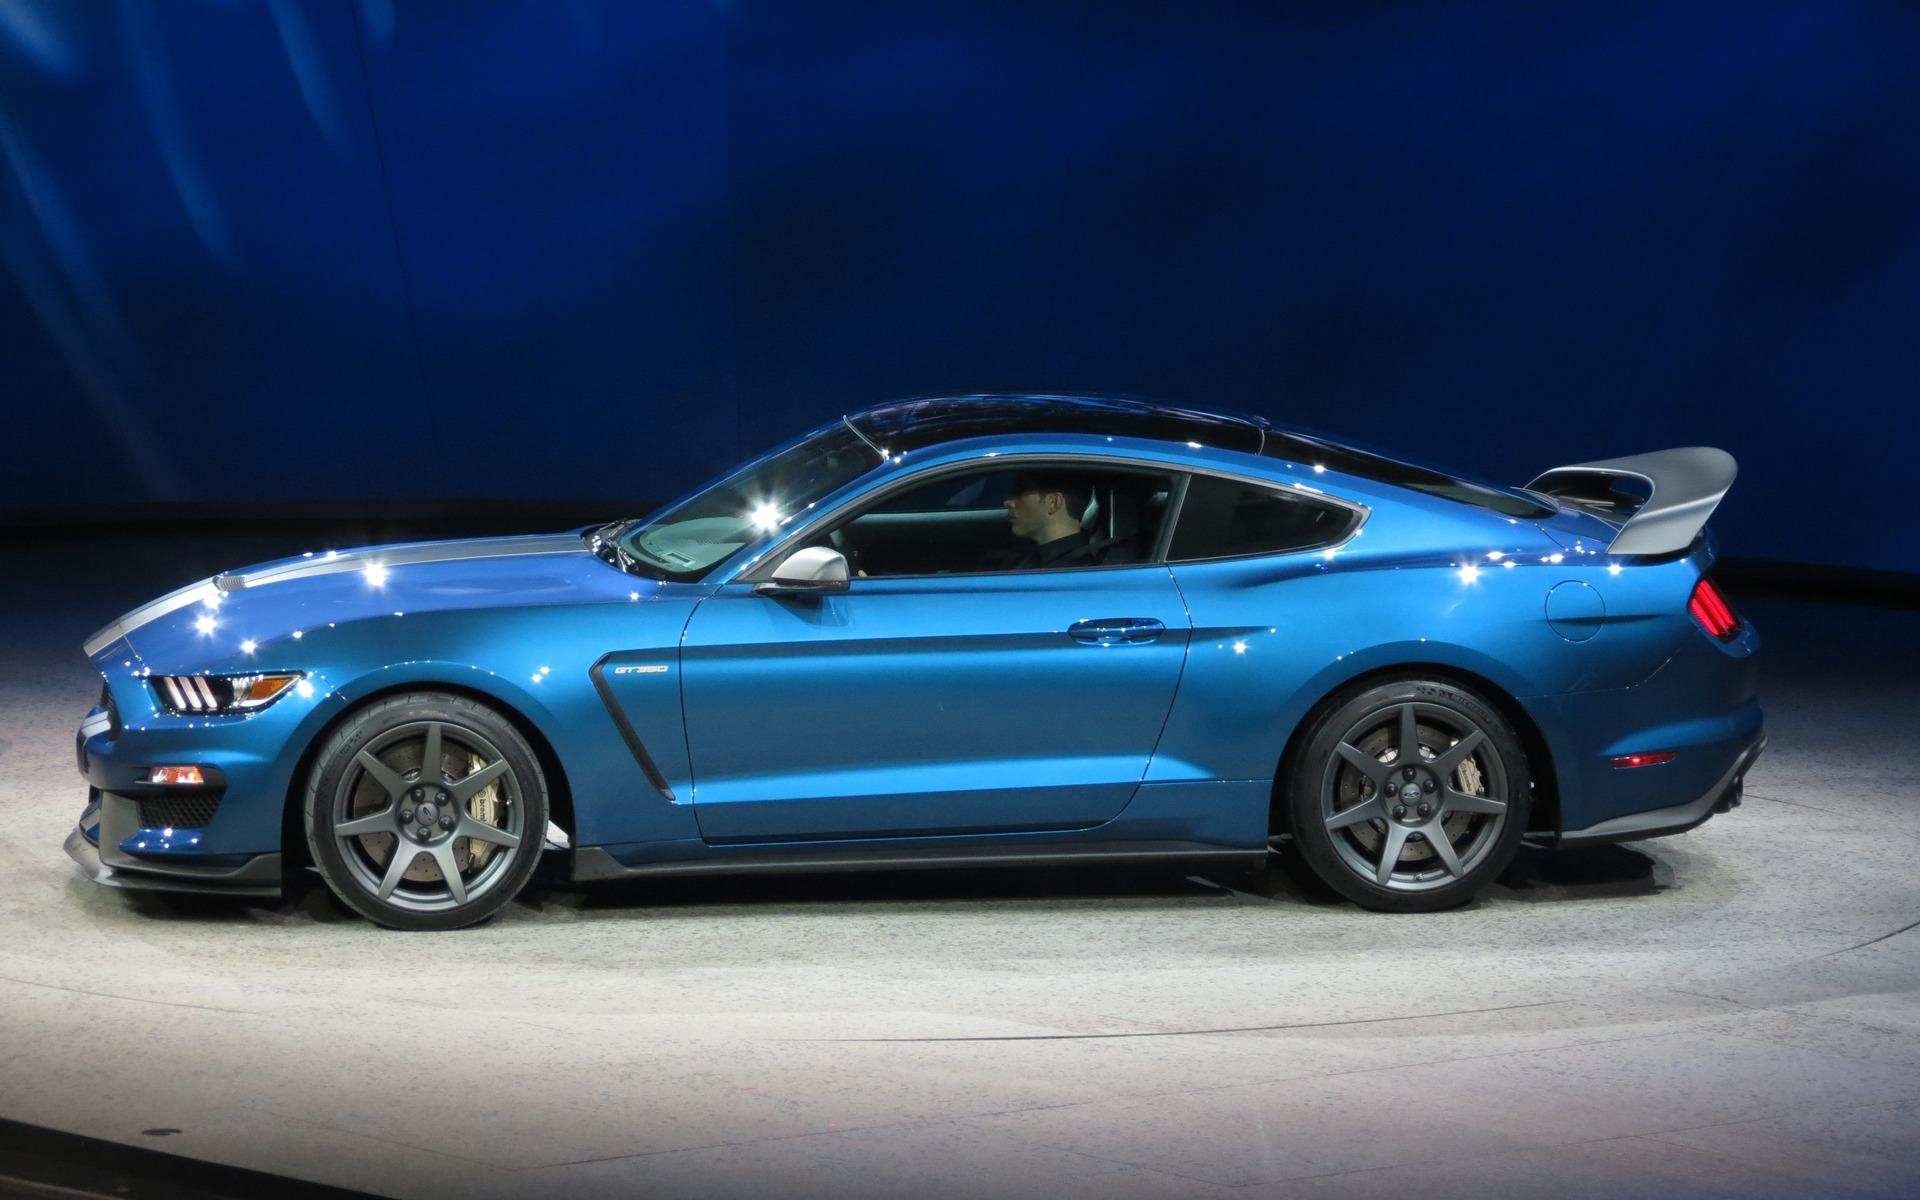 Mustang Gt 2016 Tuning >> The Mustang Shelby GT350R